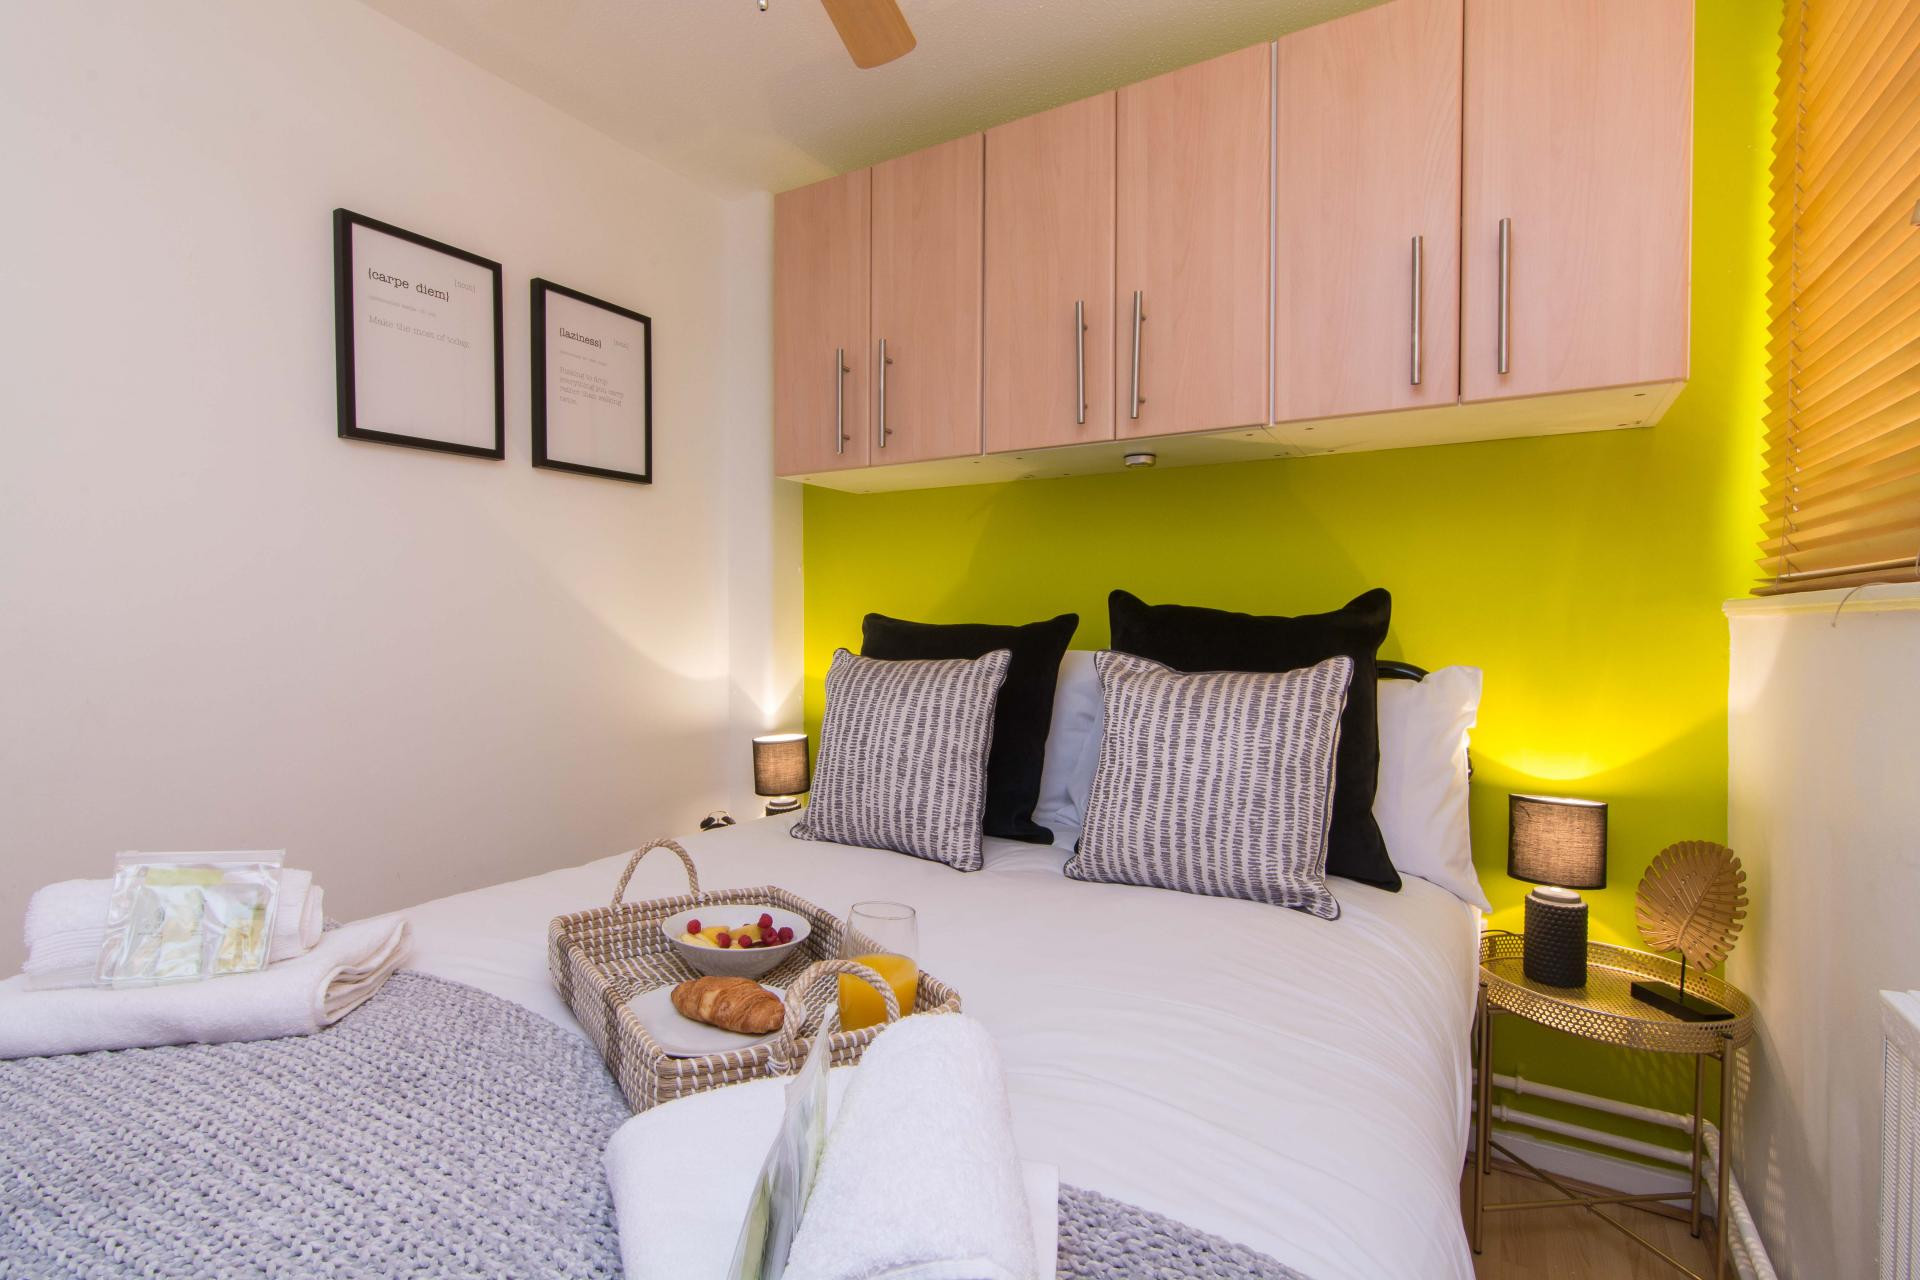 Breakfast in bed at Victoria Centre Apartment, Centre, Nottingham - Citybase Apartments